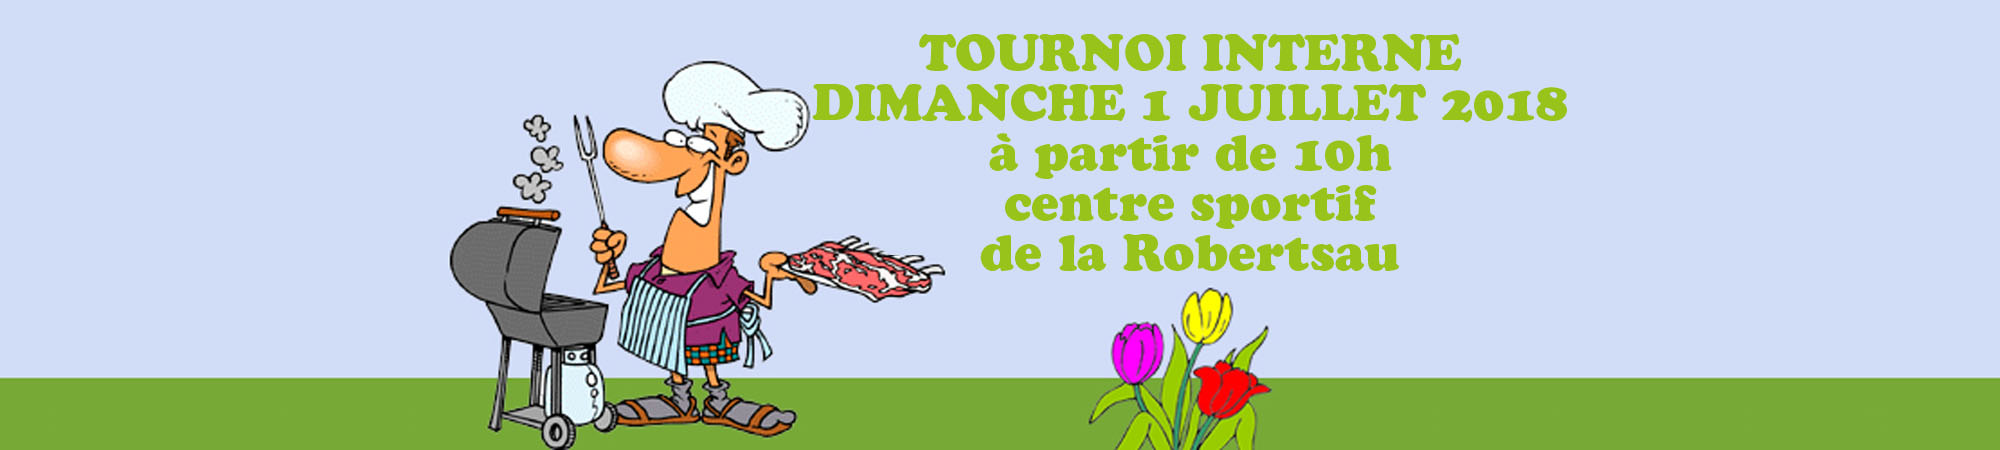 tournoi_interne